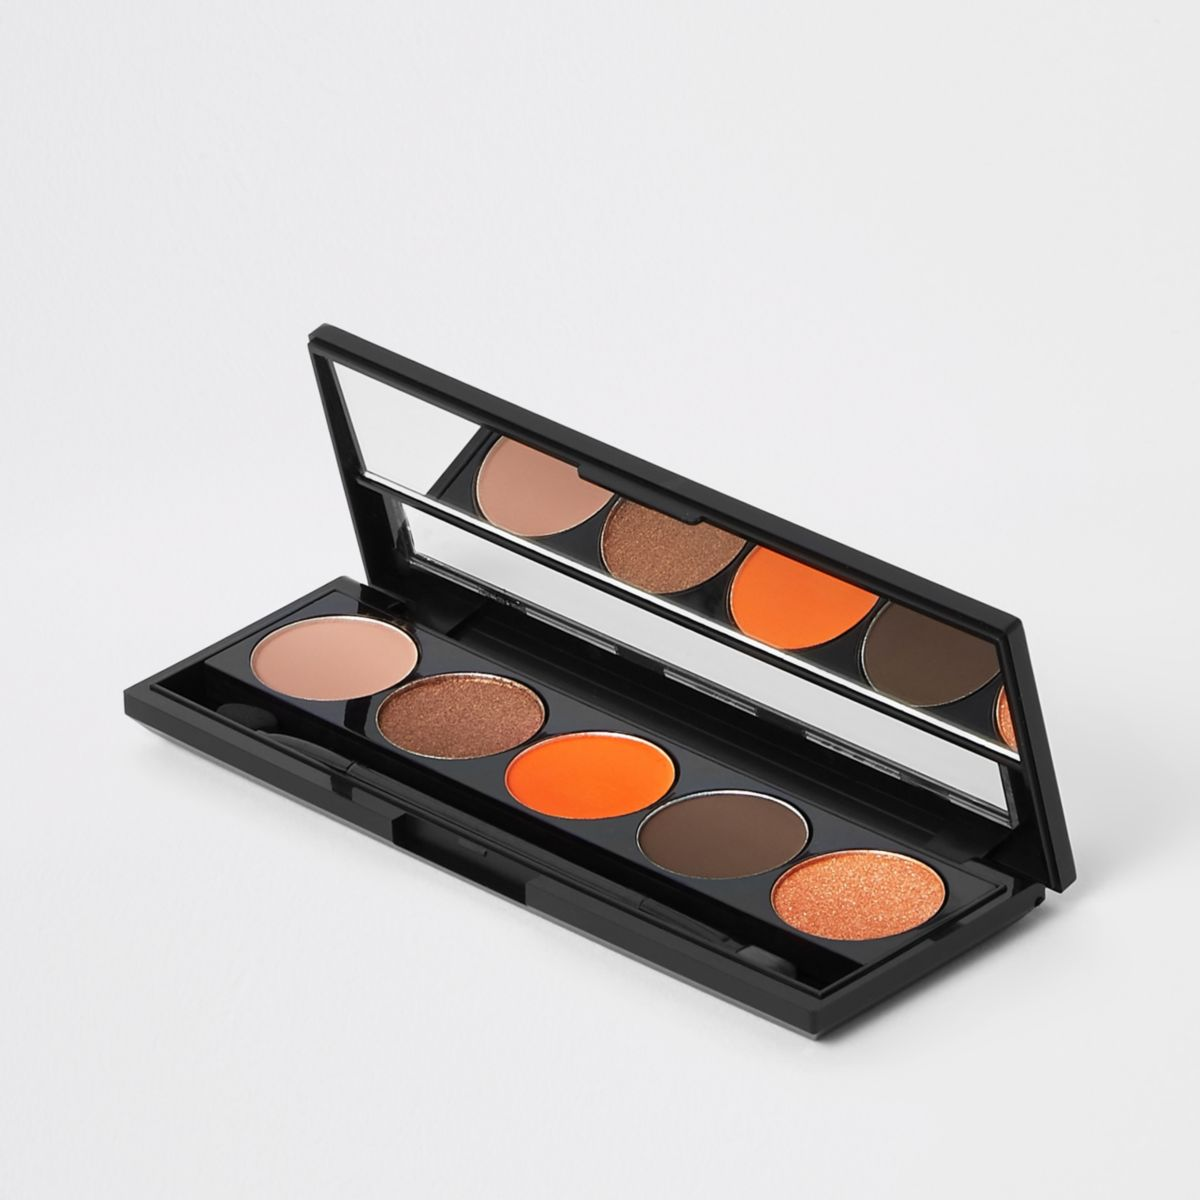 Oh my orange eyeshadow palette